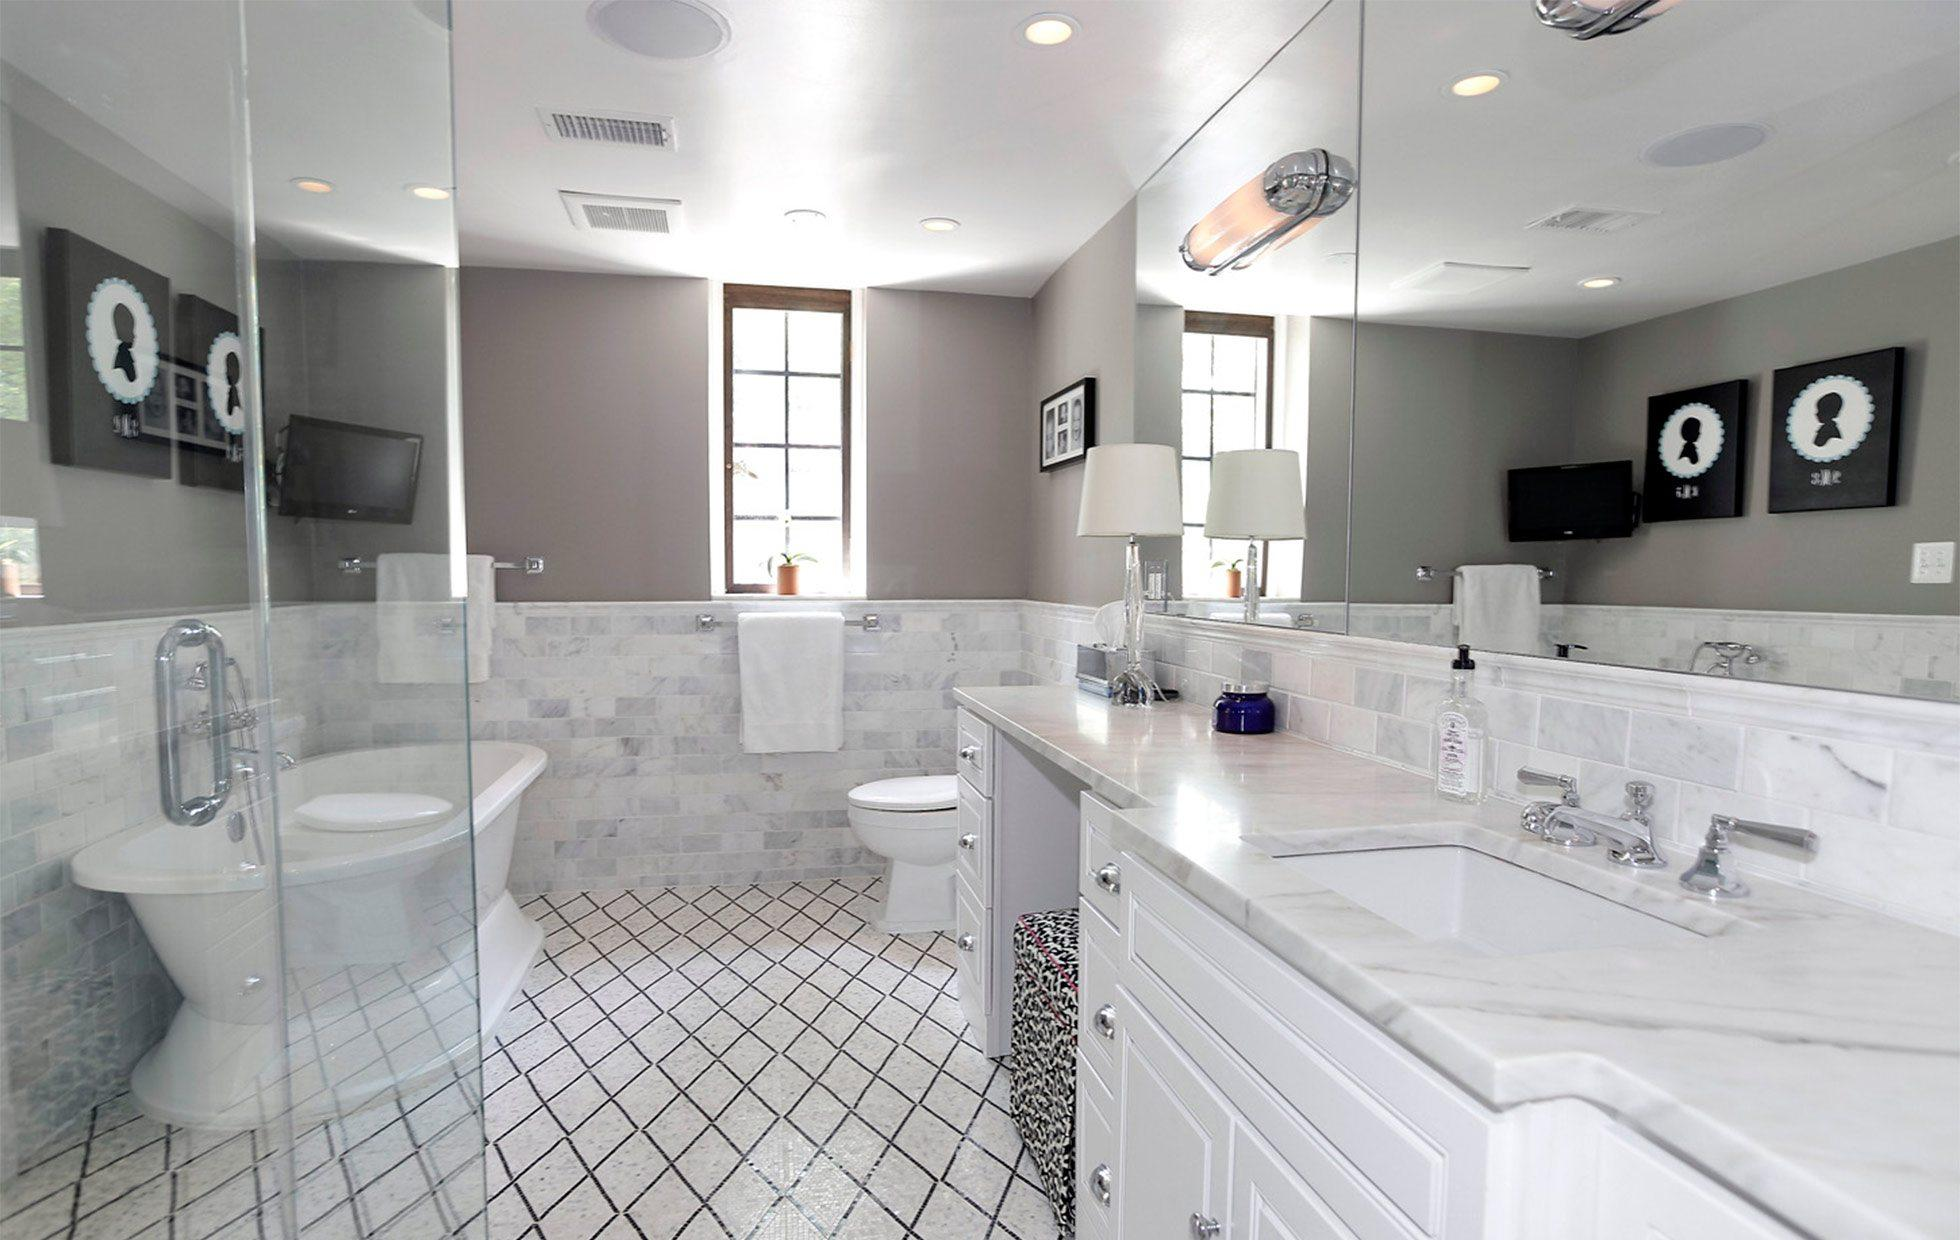 58820010ce89d2446-Belmont-Road-NW-Washington-DC-Obamas-New-Home-Her-Bath